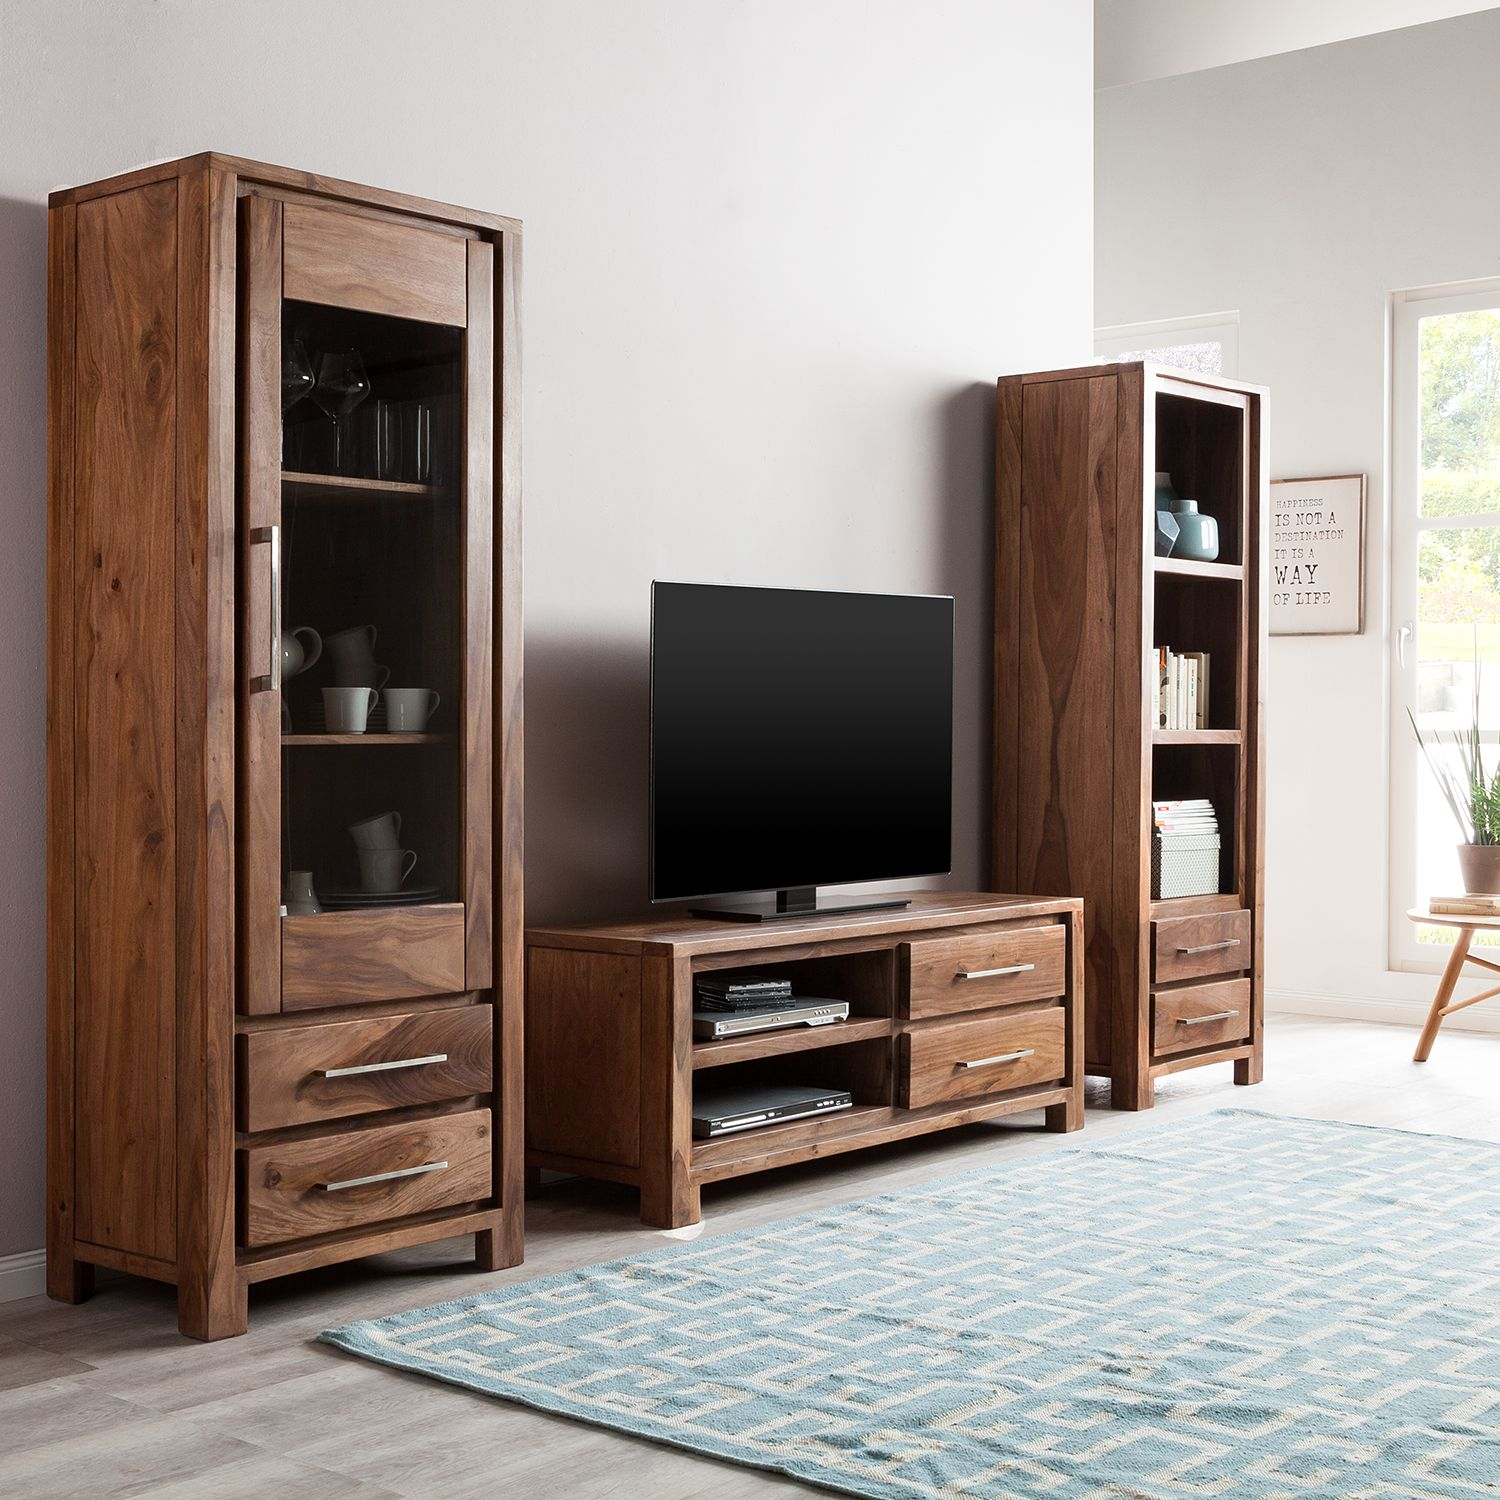 41 sparen wohnwand jambi von ars manufacti nur cherry m bel home24. Black Bedroom Furniture Sets. Home Design Ideas